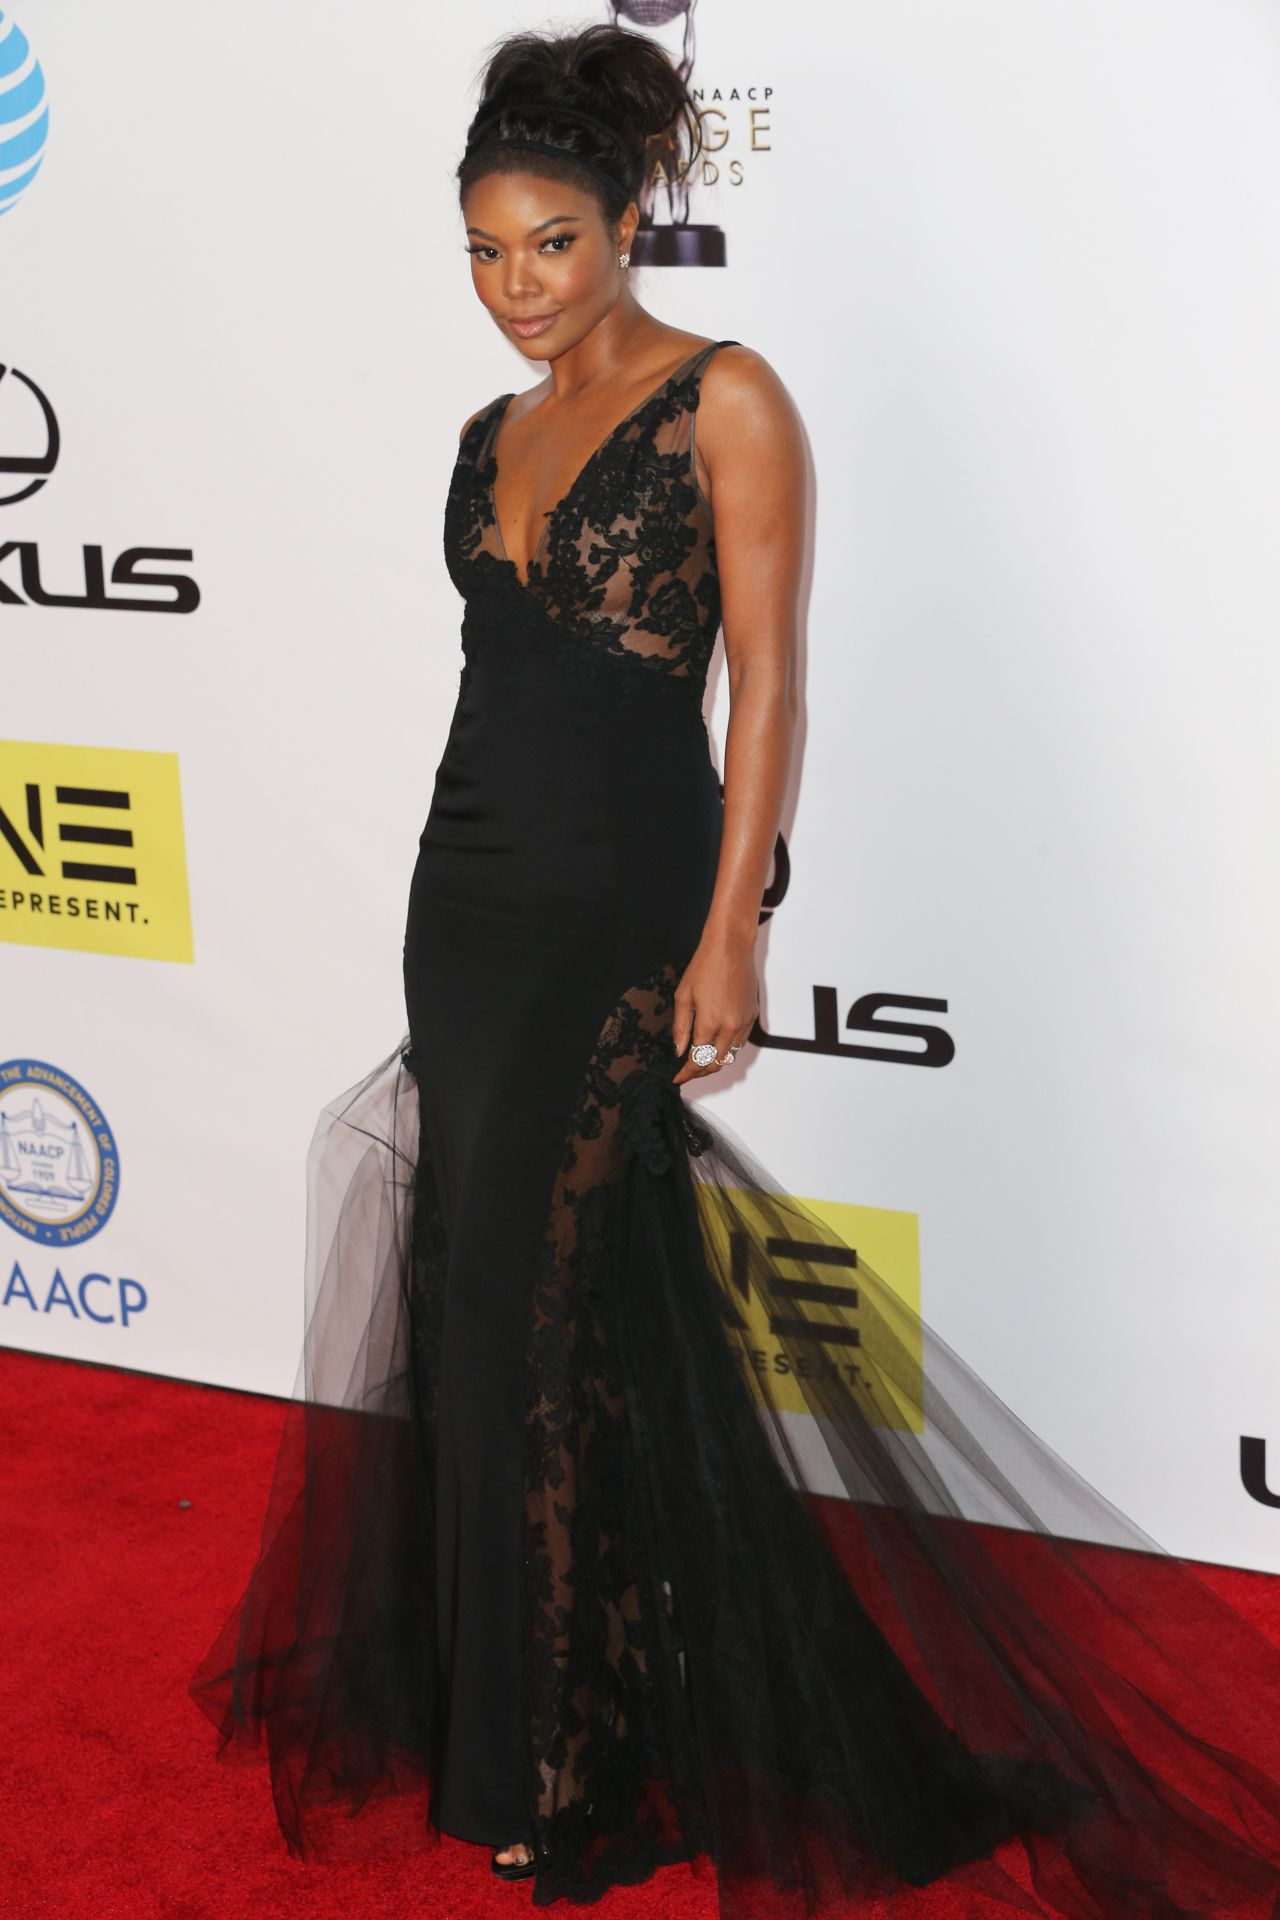 gabrielle-union-naacp-image-awards-2016-presented-by-tv-one-in-pasadena-ca-5